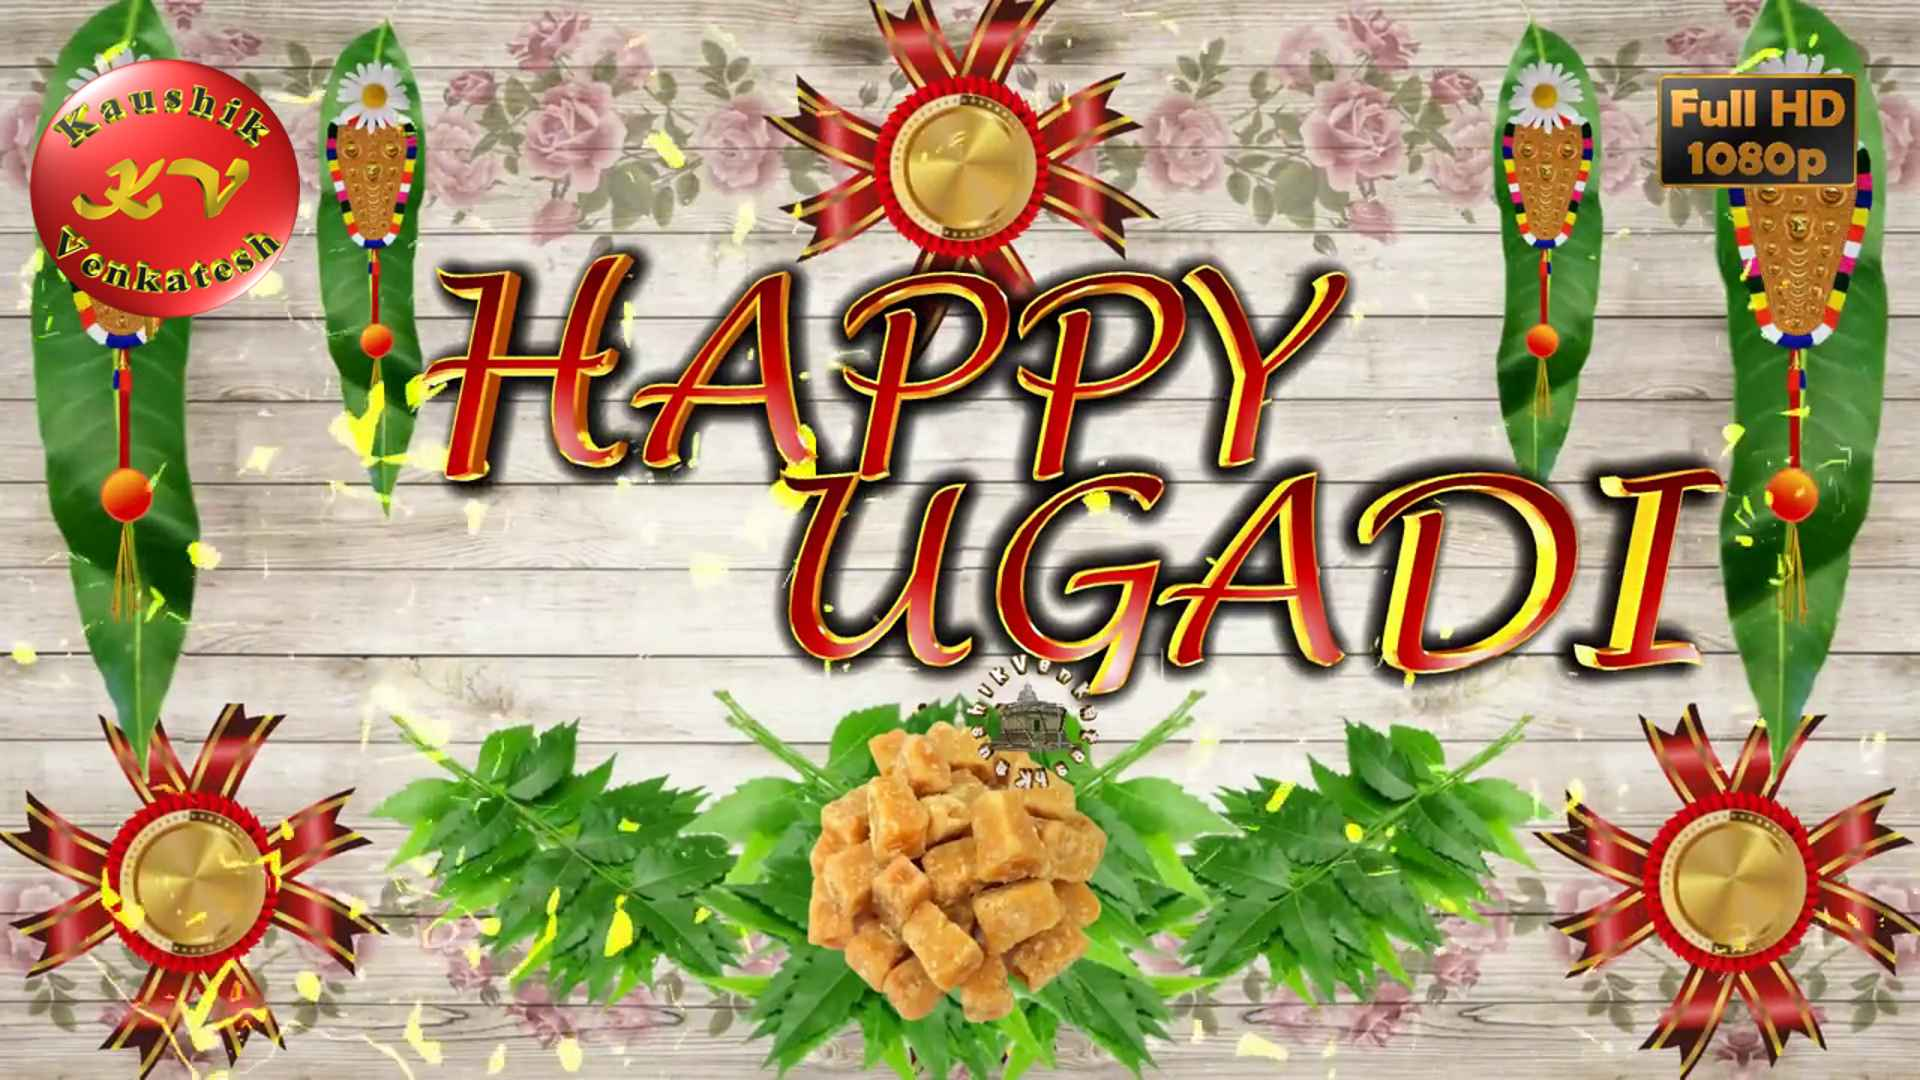 Happy Ugadi Images Download HD